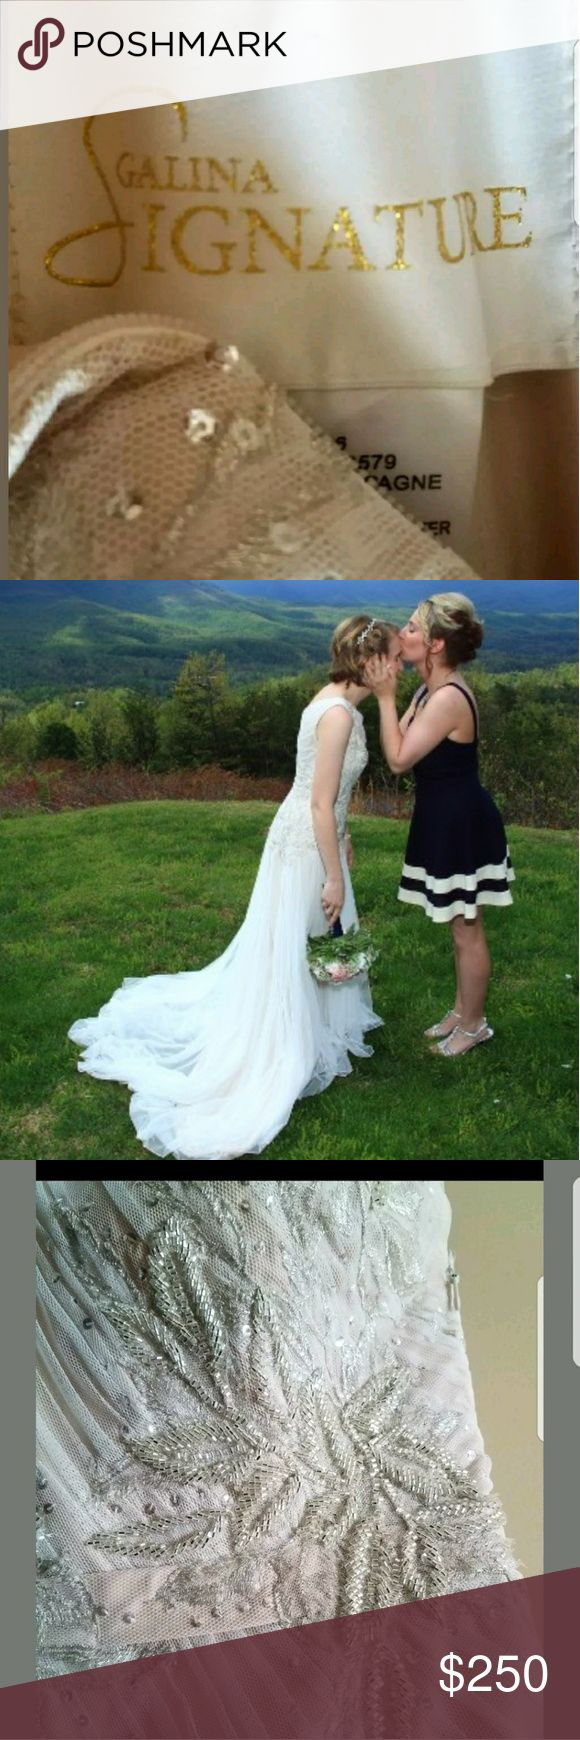 dry cleaning wedding dress cost » Wedding Dresses Designs, Ideas and ...